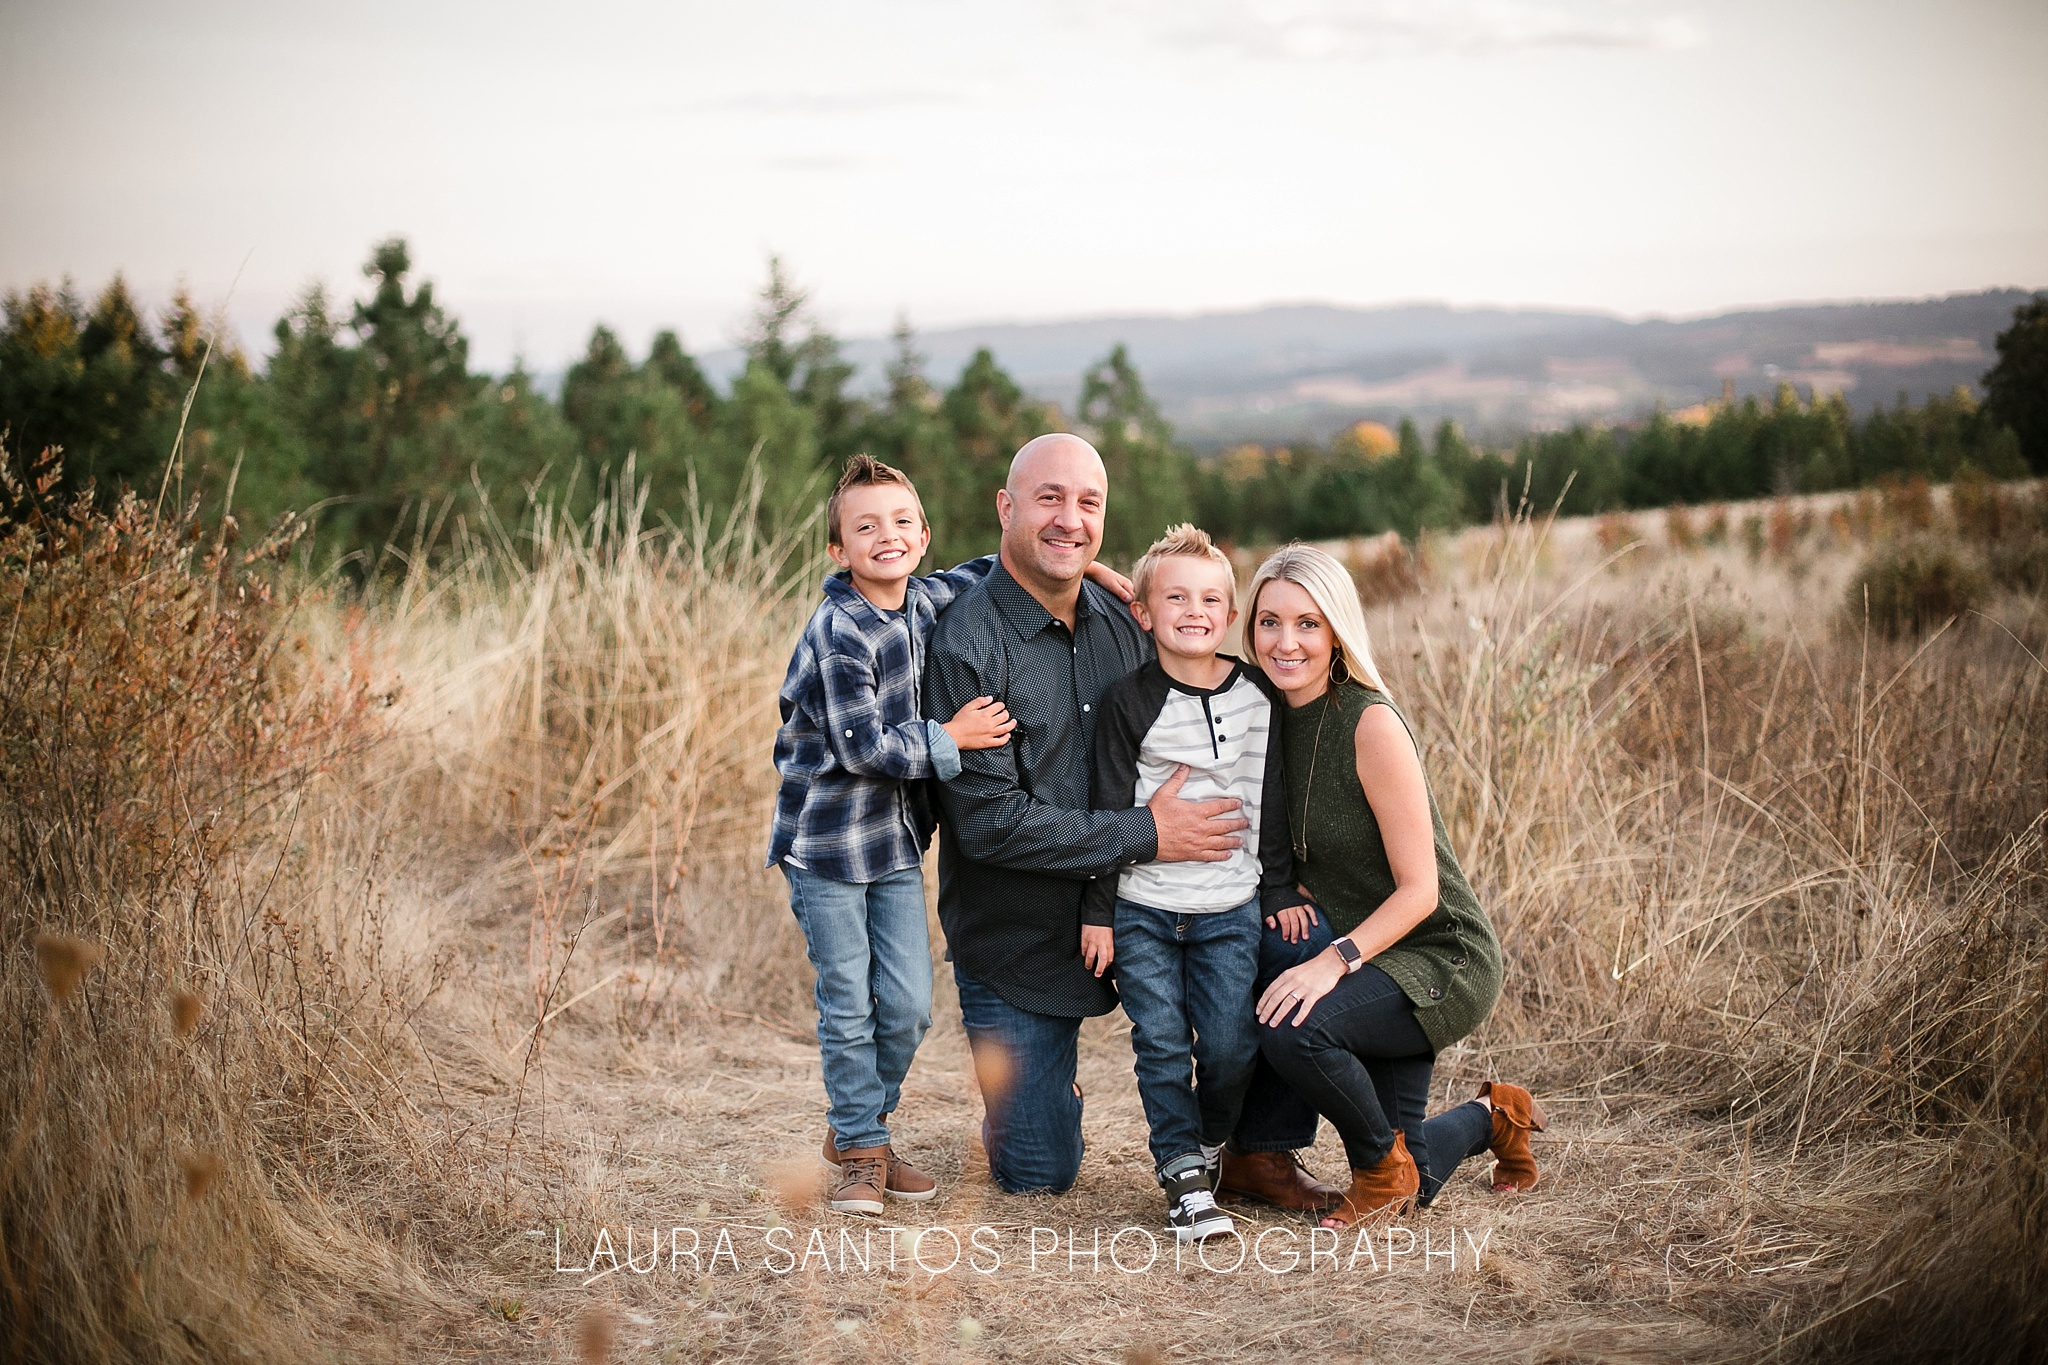 Laura Santos Photography Portland Oregon Family Photographer_0407.jpg